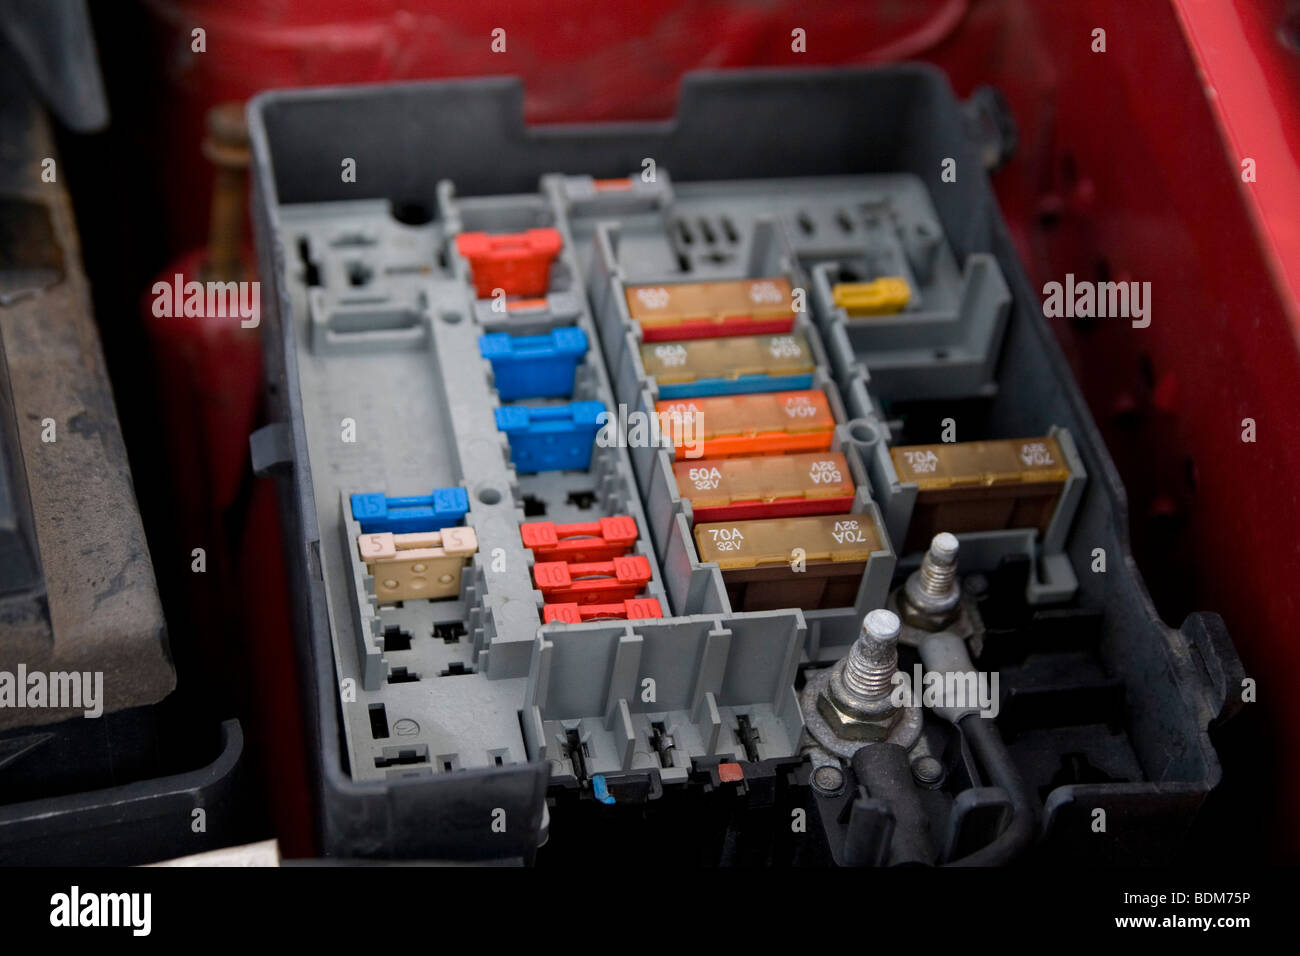 Citroen Fuse Box Schematic Diagrams C3 Wiring Diagram Berlingo Stock Photo 25645586 Alamy